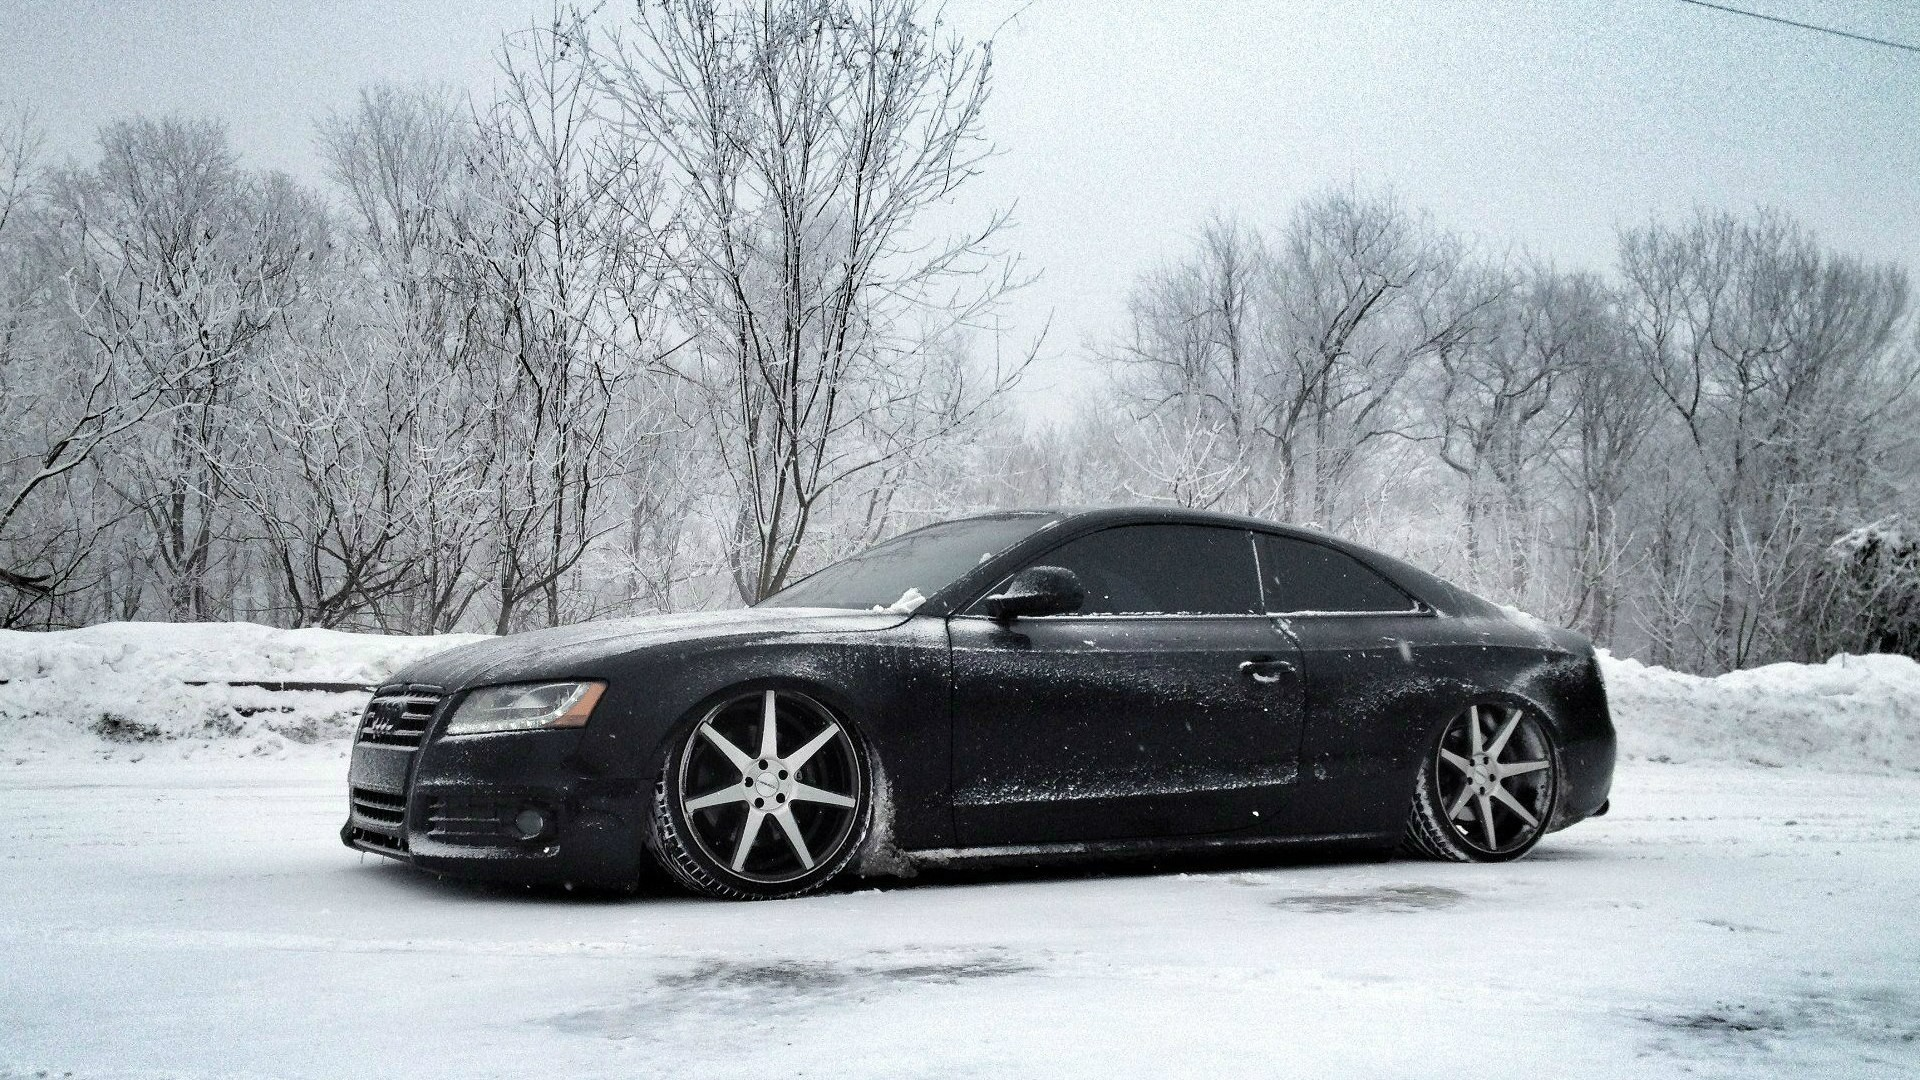 audi in snow, hd cars, 4k wallpapers, images, backgrounds, photos